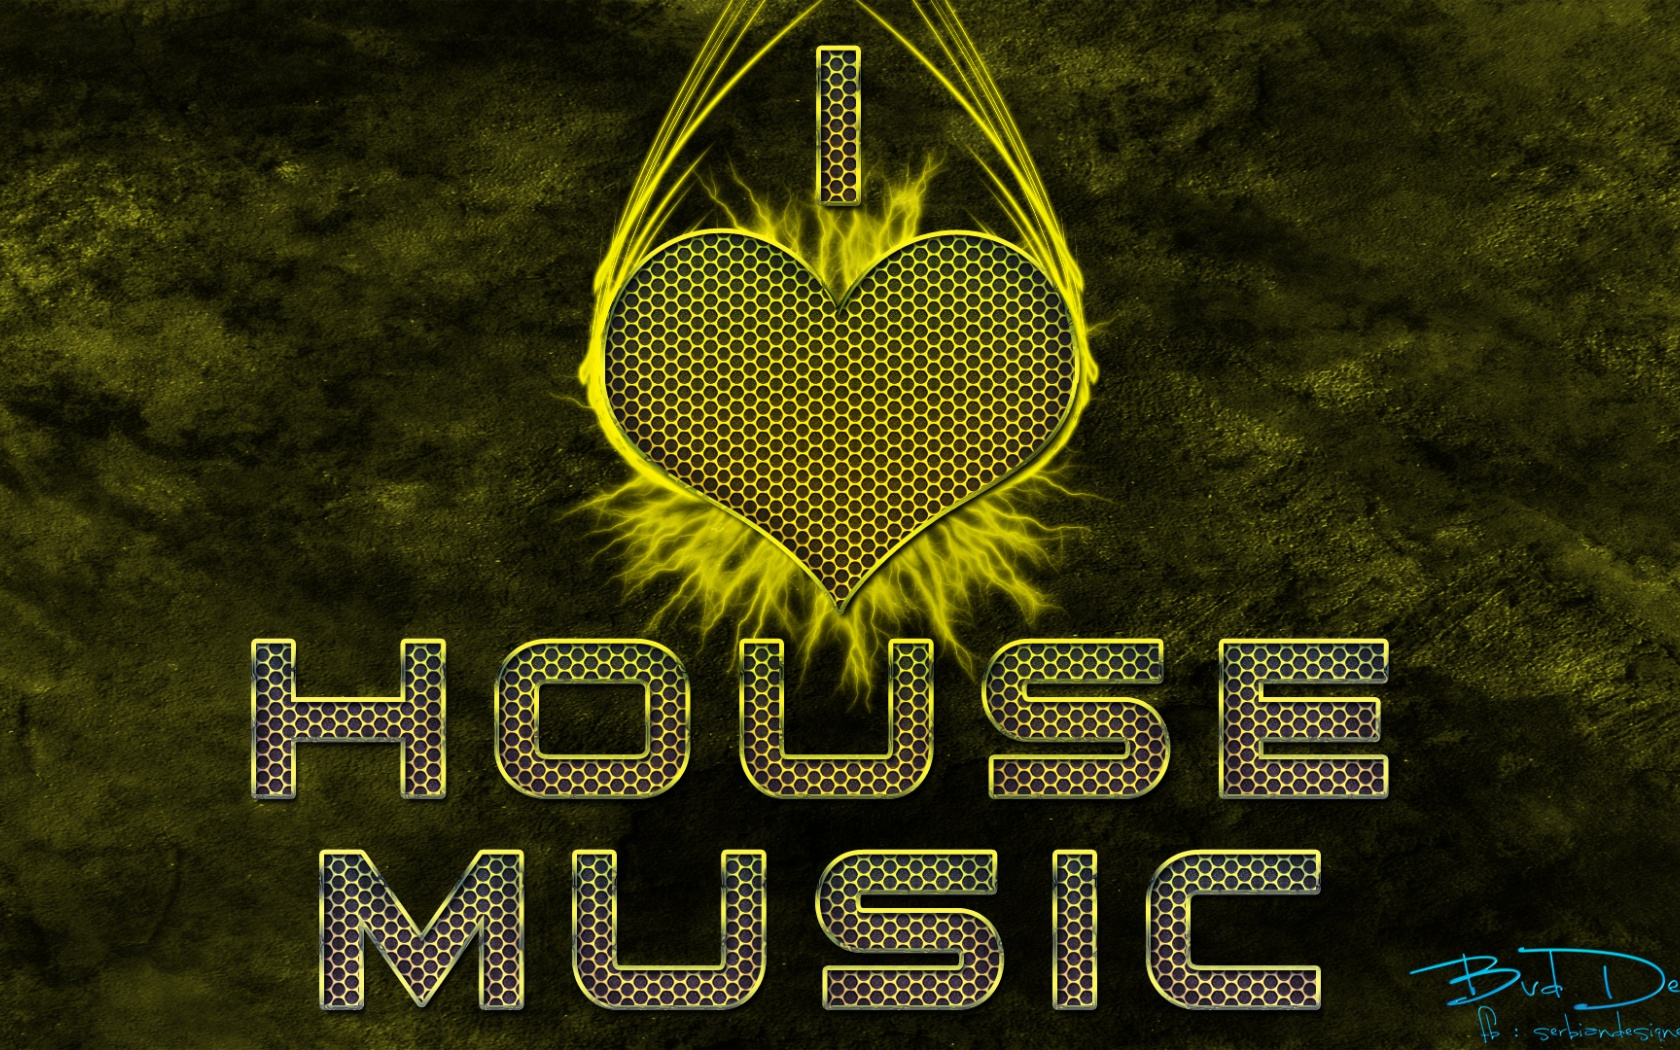 1680x1050 I love house music